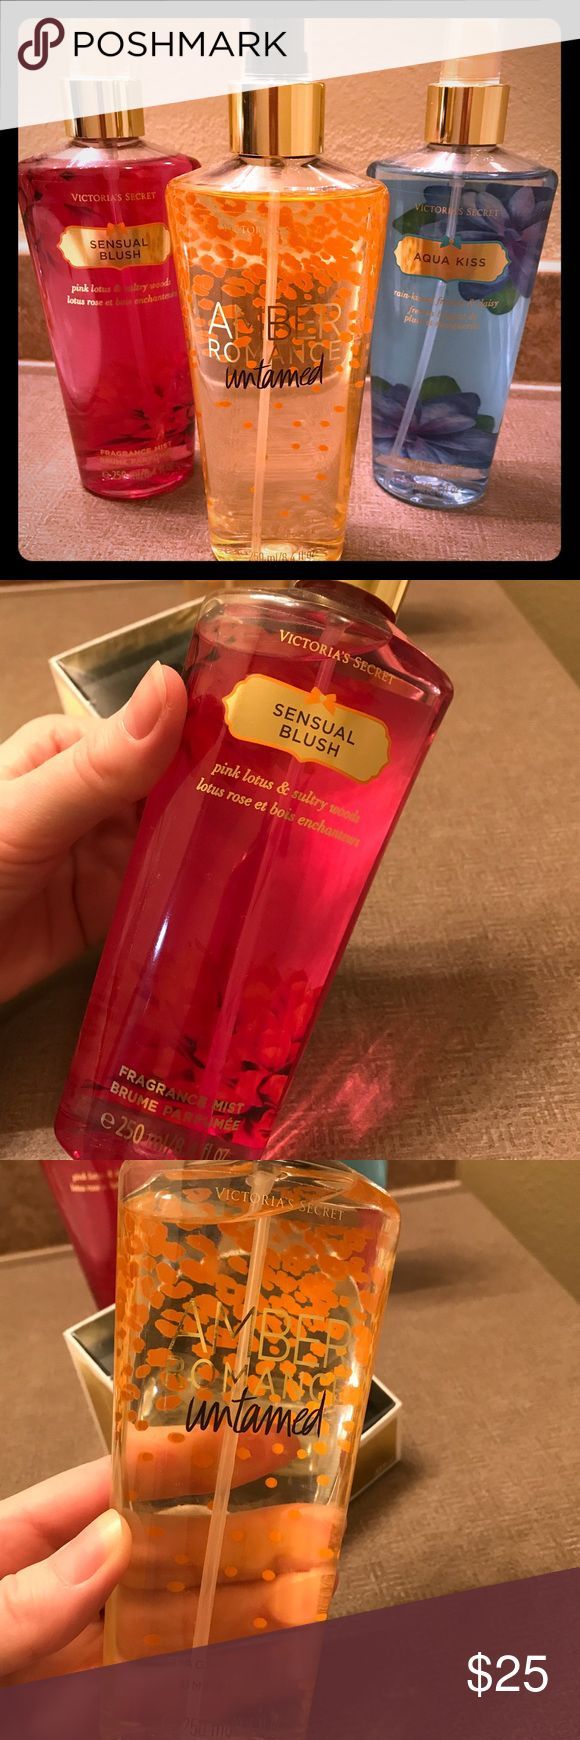 Lot of 3 Victoria Secret Body Sprays, All New. Set of 3 Victoria Secret Body Sprays.  - Sensual Blush - Aqua Kiss - Amber Romance Untamed  All are new. Asking $25 for the set or make an offer. Victoria's Secret Makeup